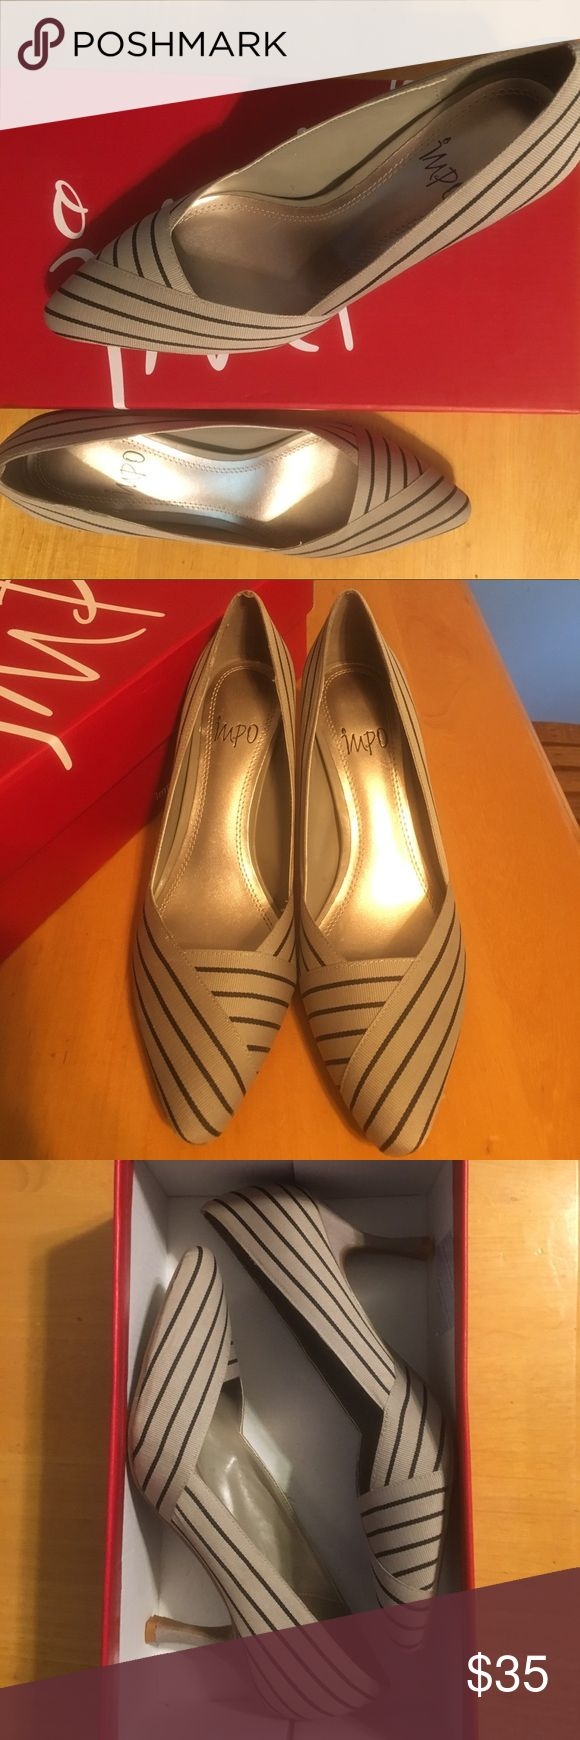 Classy, Women's Pump Shoes! Brand New!!! Striped, Taupe and Black Pump Heels. Only worn to try on. My feet grew after pregnancy so I never got to wear it. Impo Shoes Heels